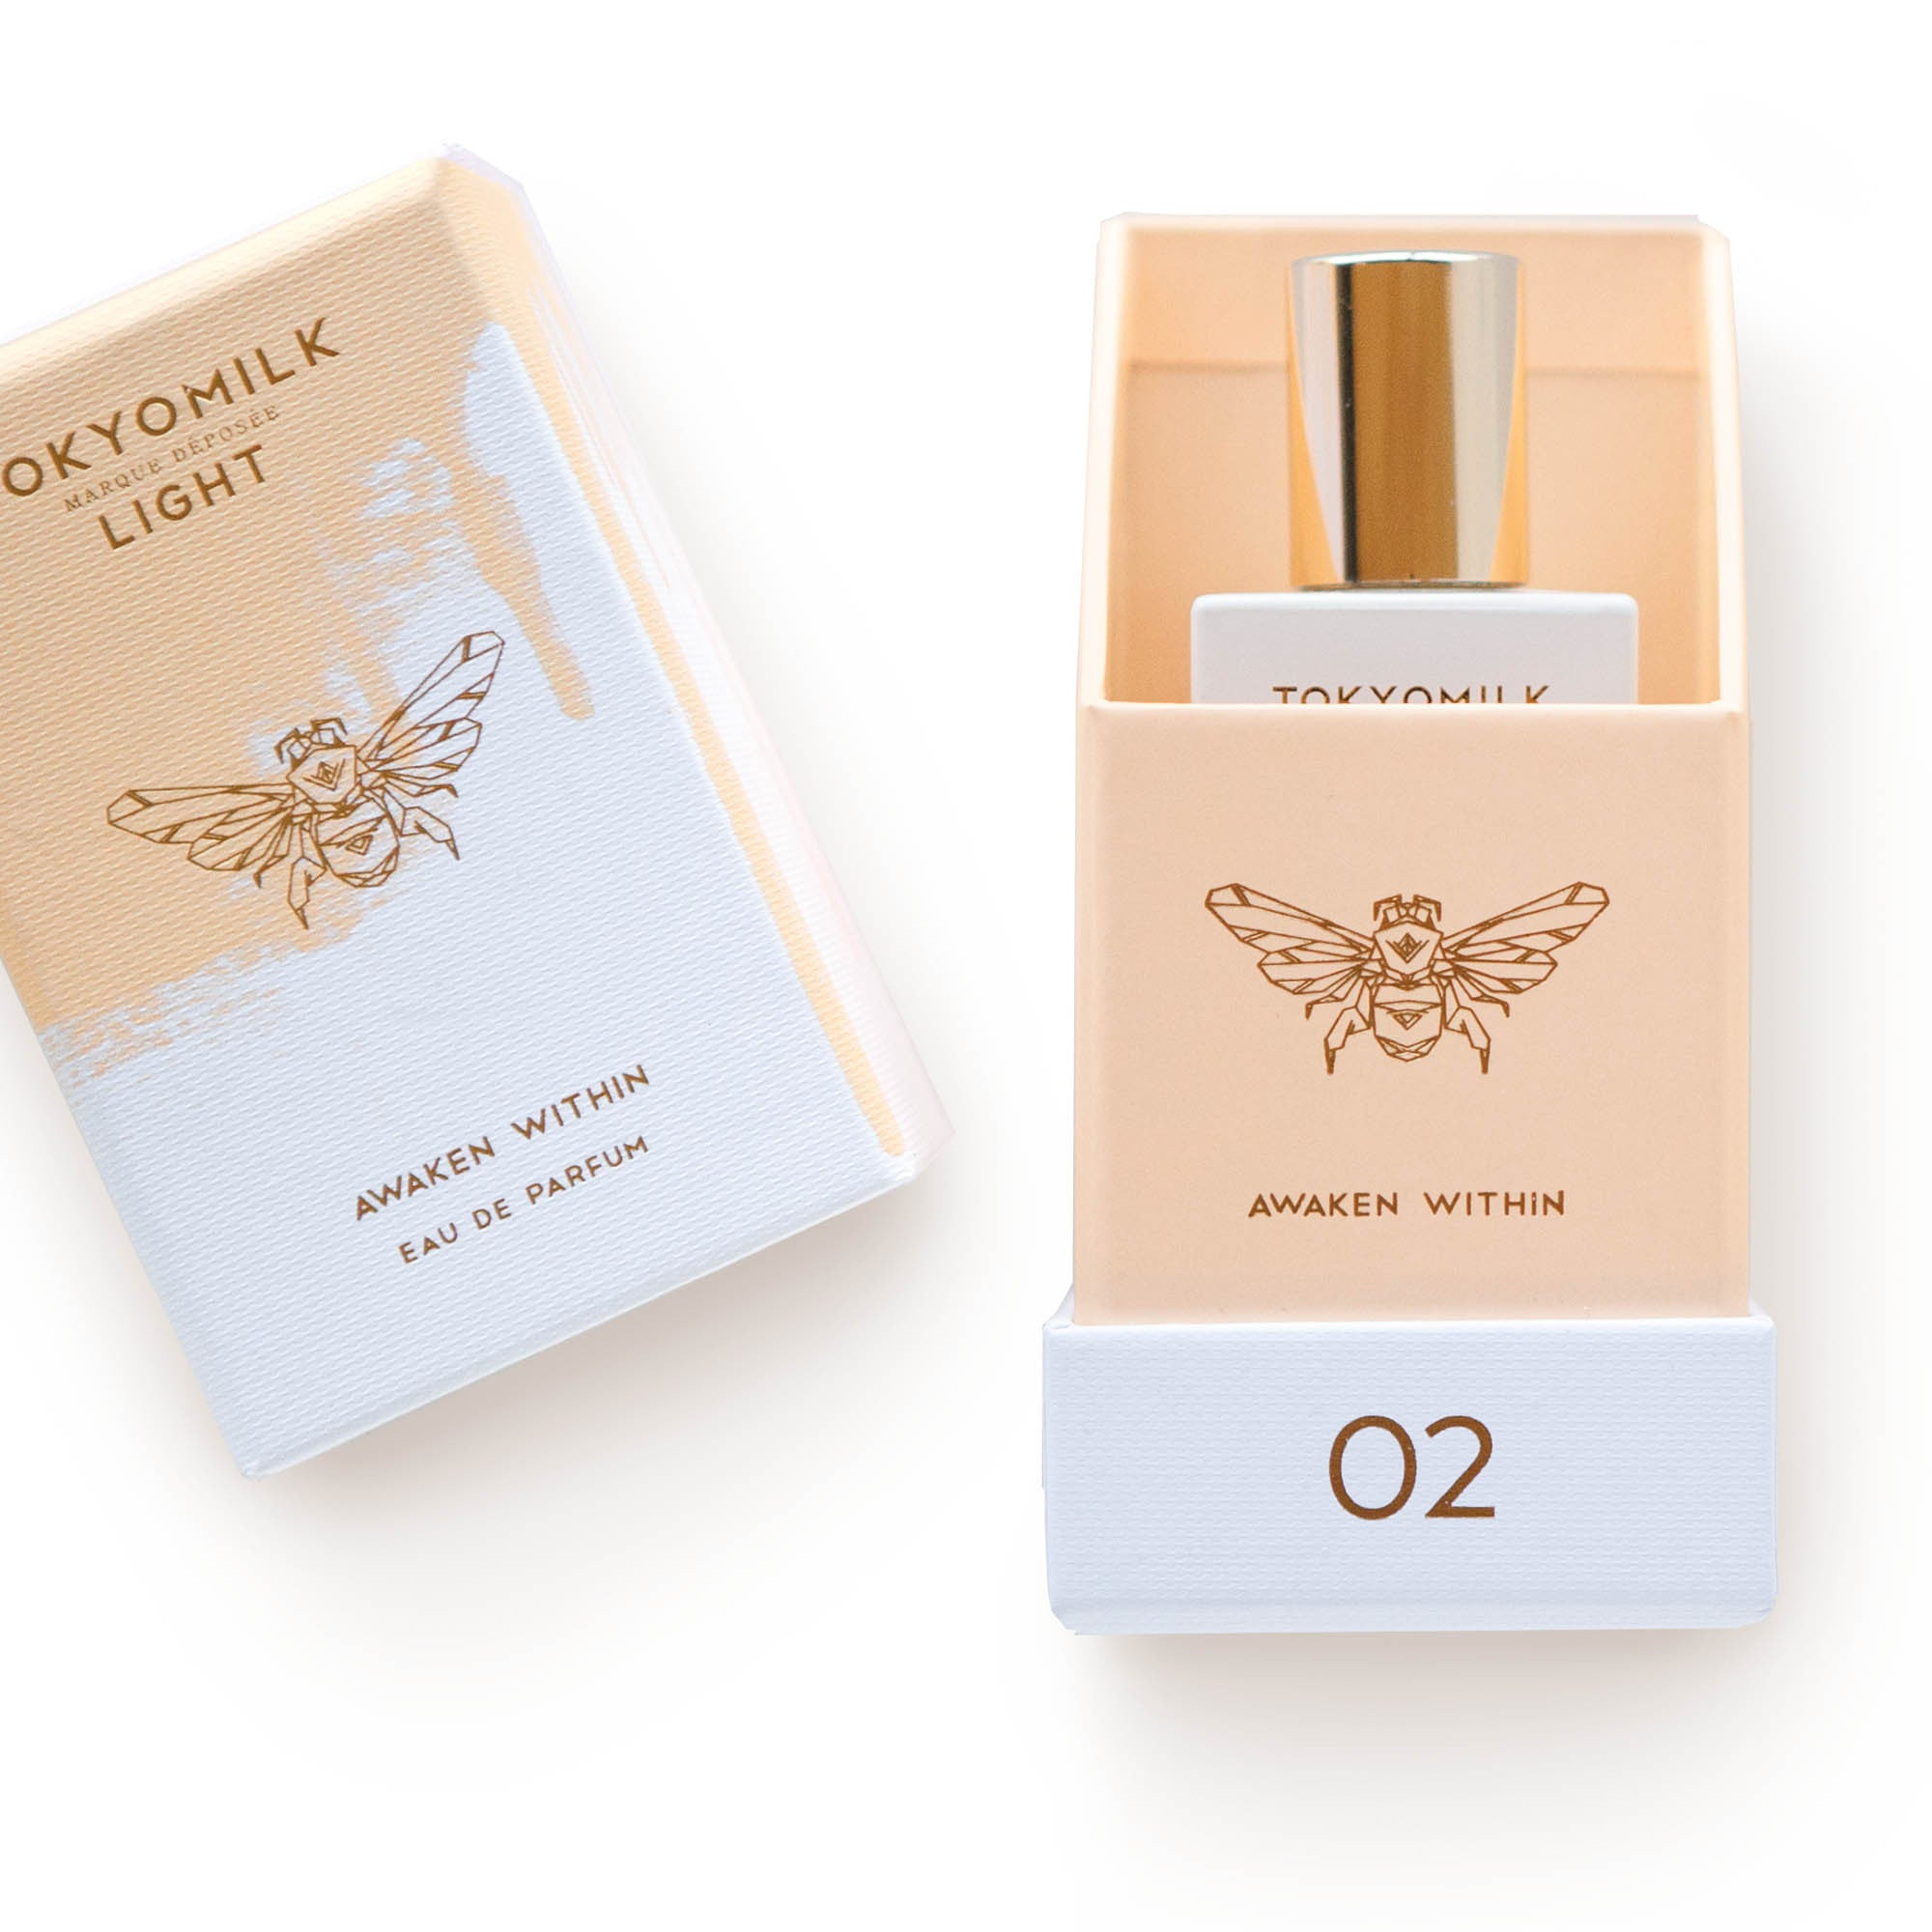 TOKYO MILK LIGHT PARFUM AWAKEN WITHIN 47.3 ml